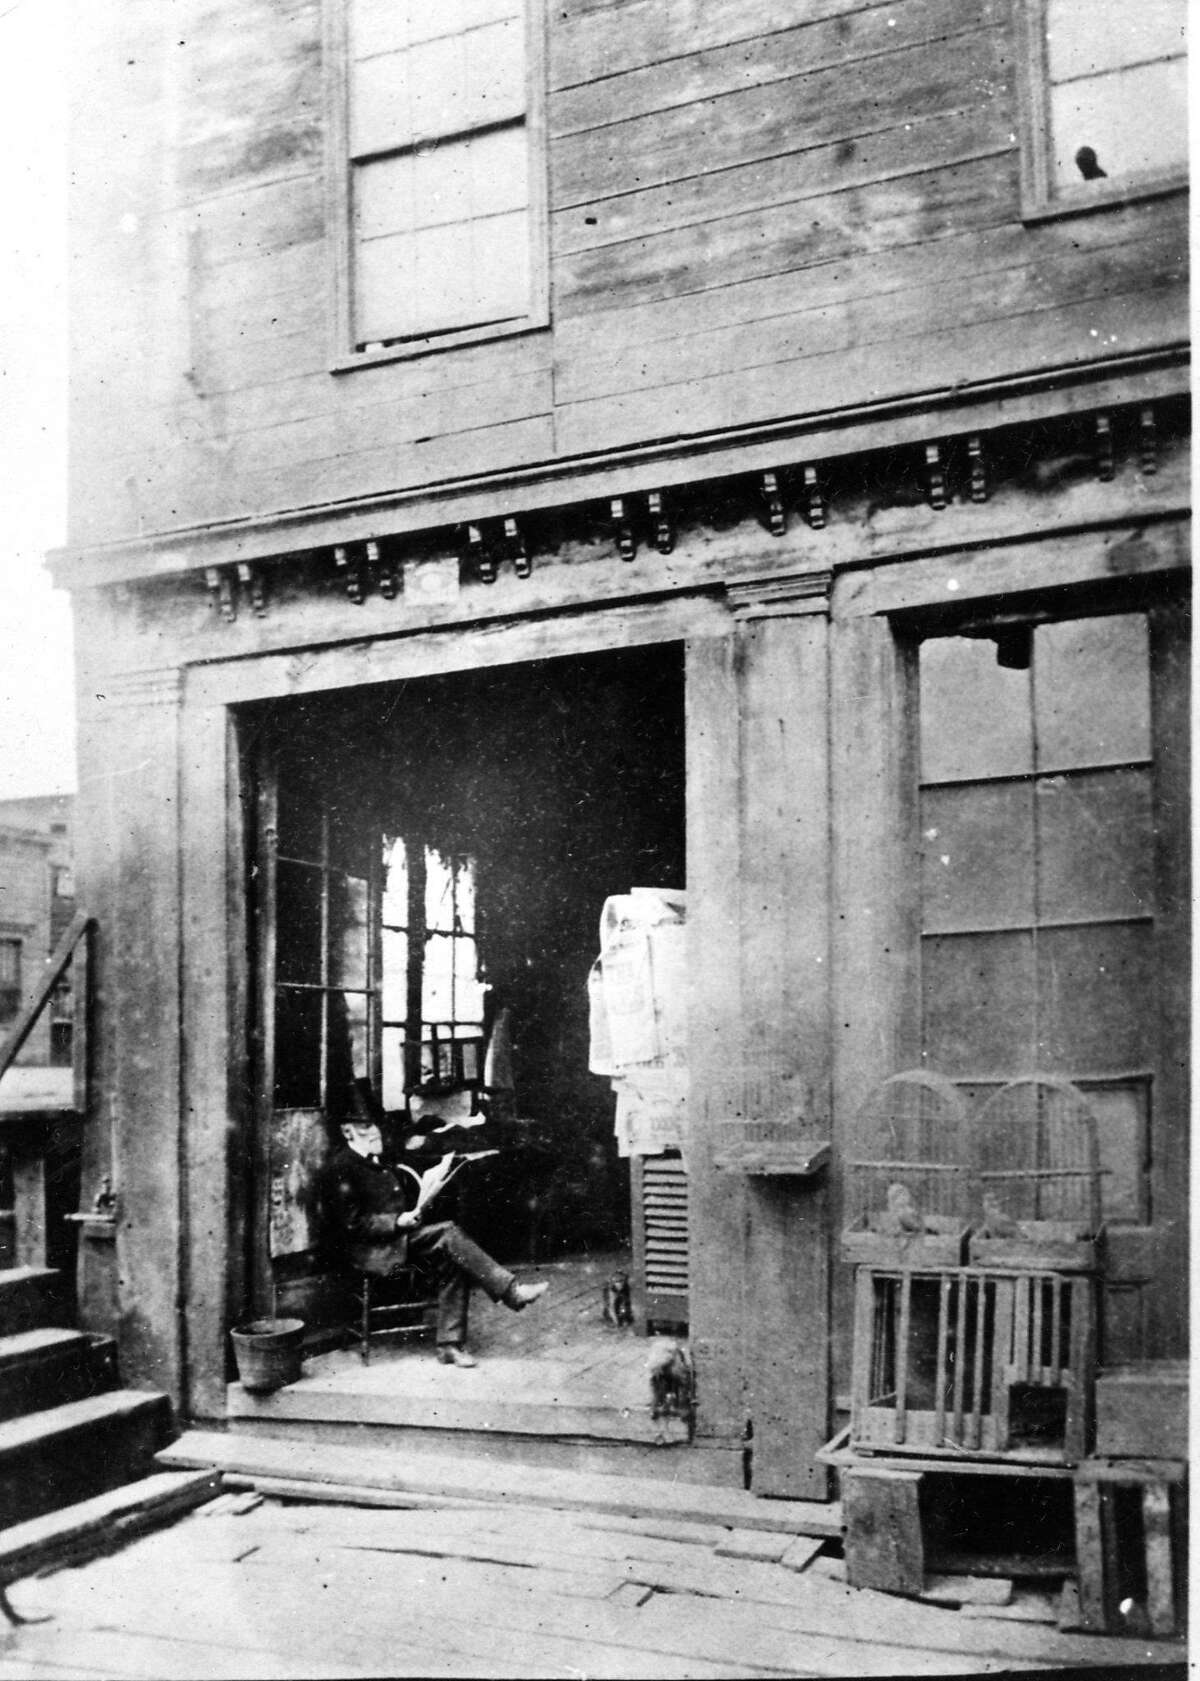 Abe Warner's Cobweb Palace on Francisco Street was one of the most popular taverns in the city in the mid-19th century, and was definitely the strangest.